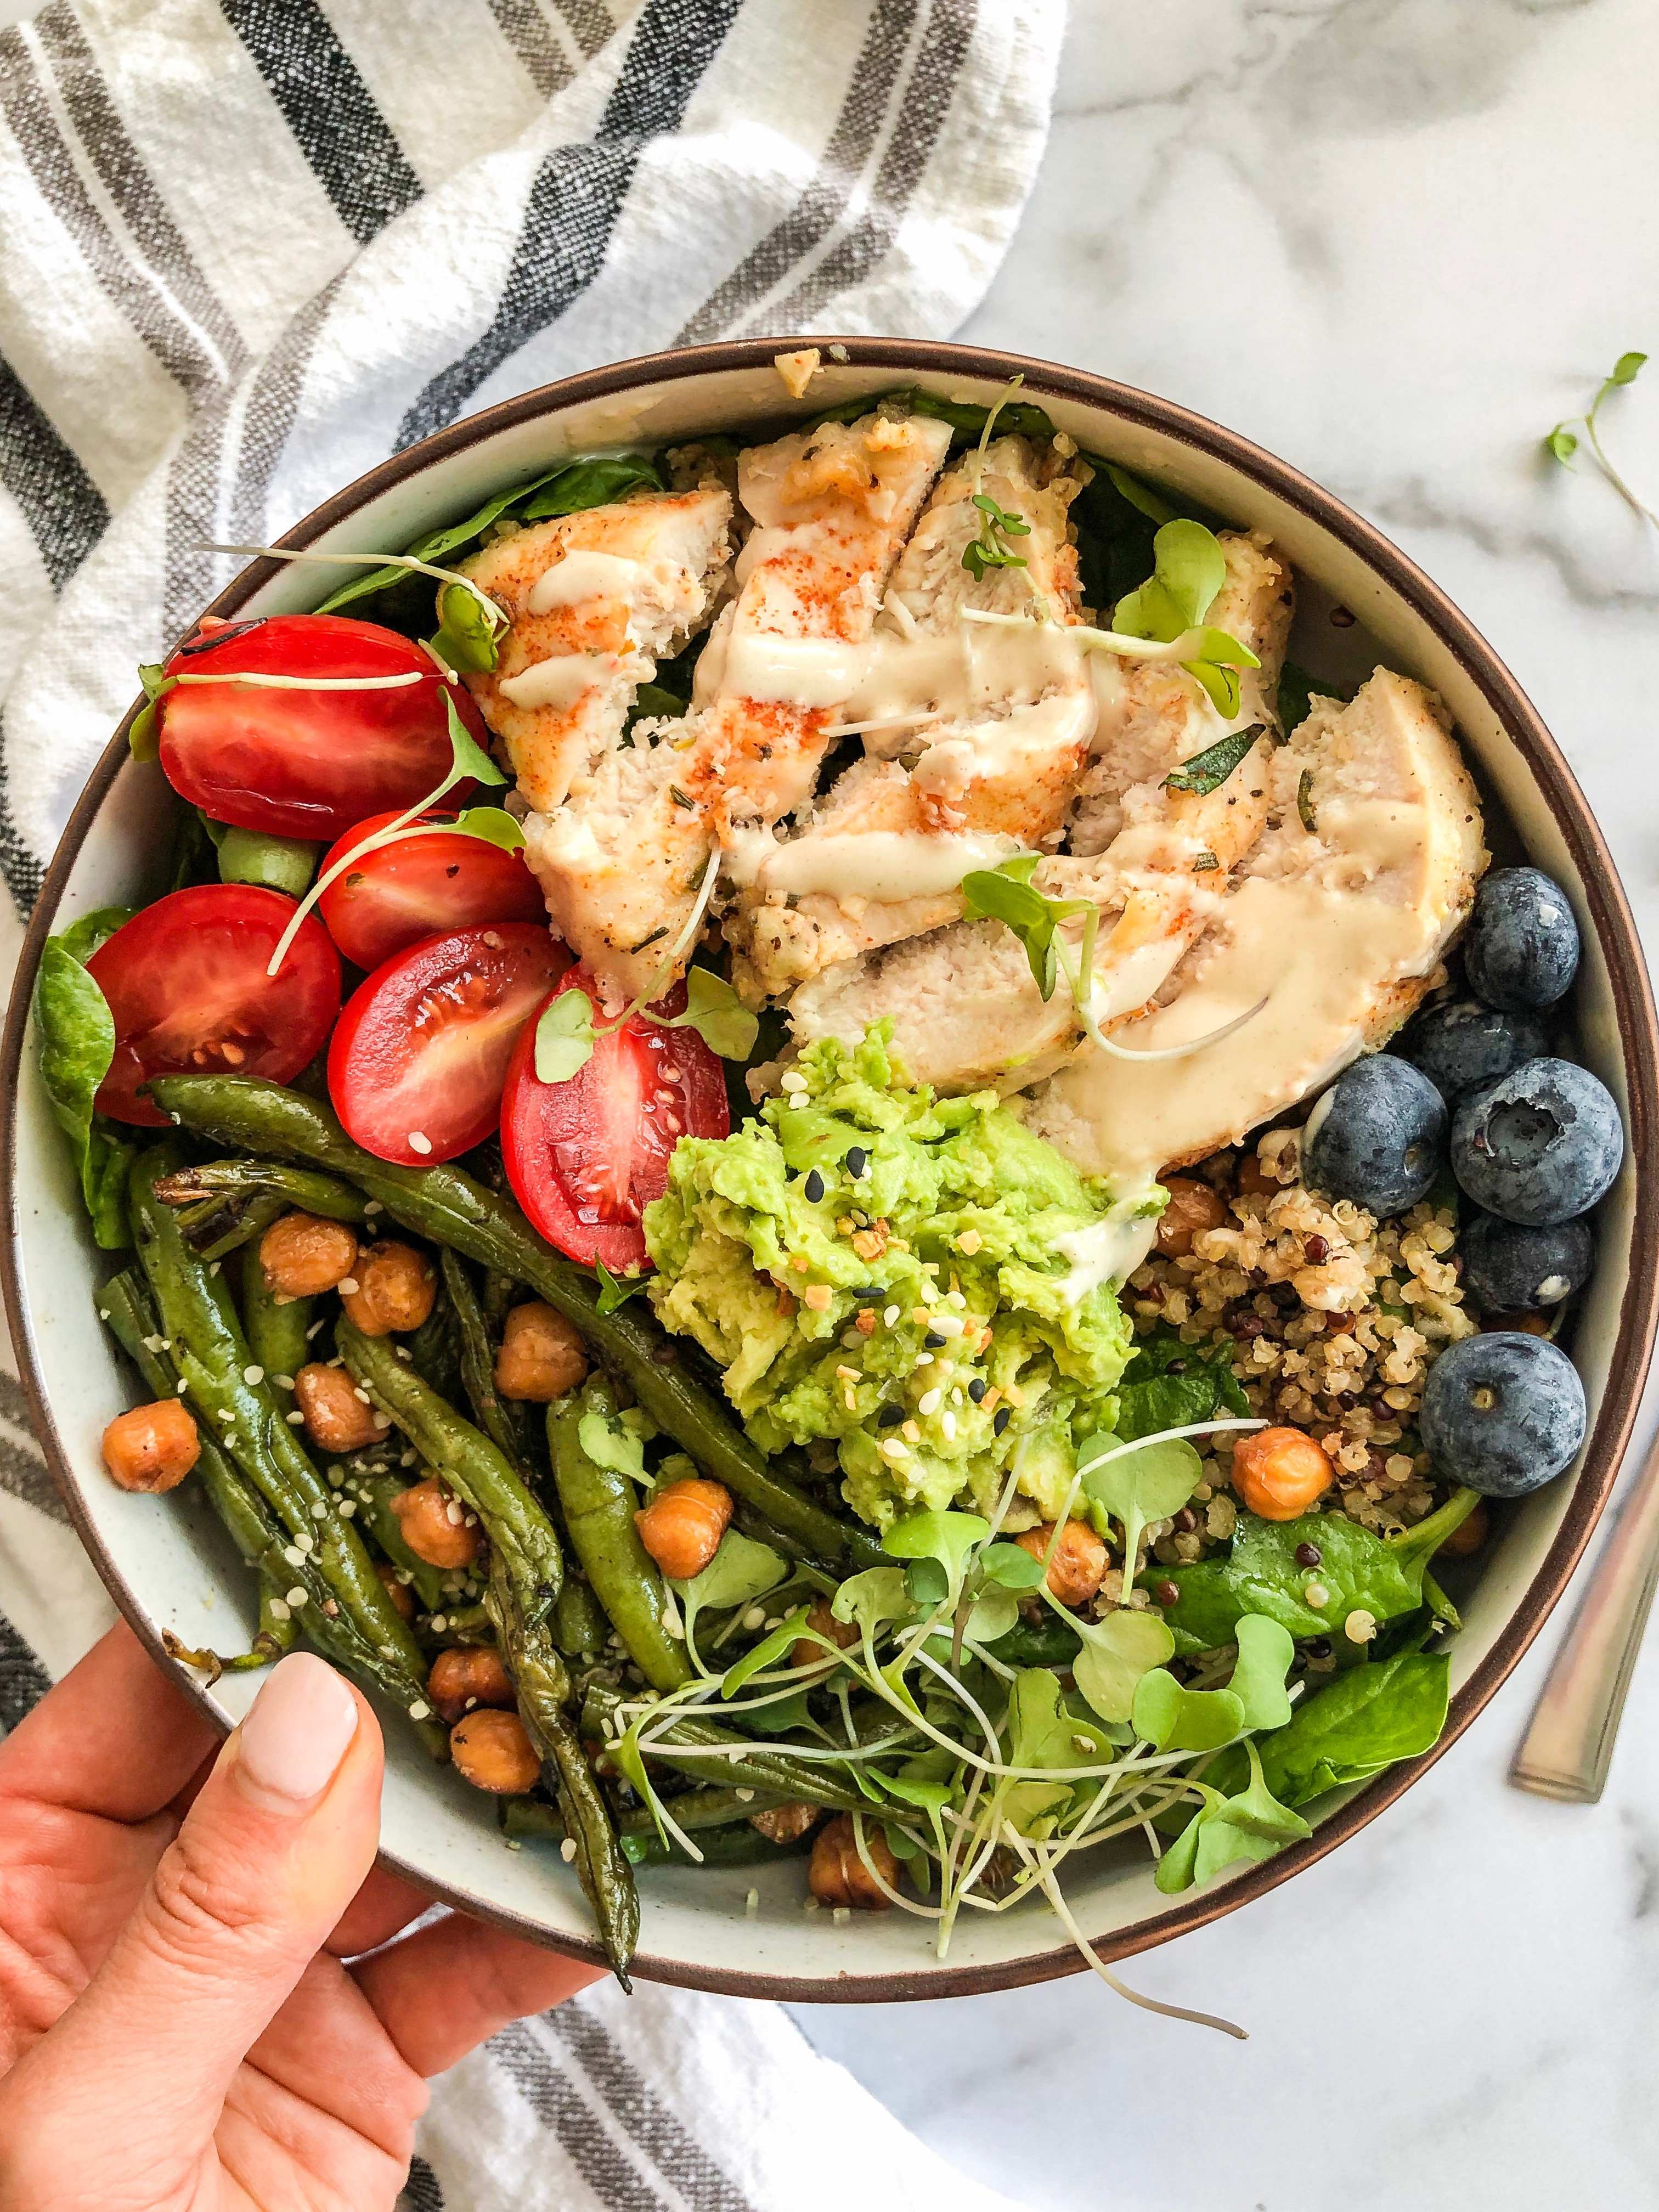 A bowl with green beans, tomatoes, avocado, quinoa, blueberries and white meat. There is salad in the bottom as well and chickpeas are sprinkled on top.